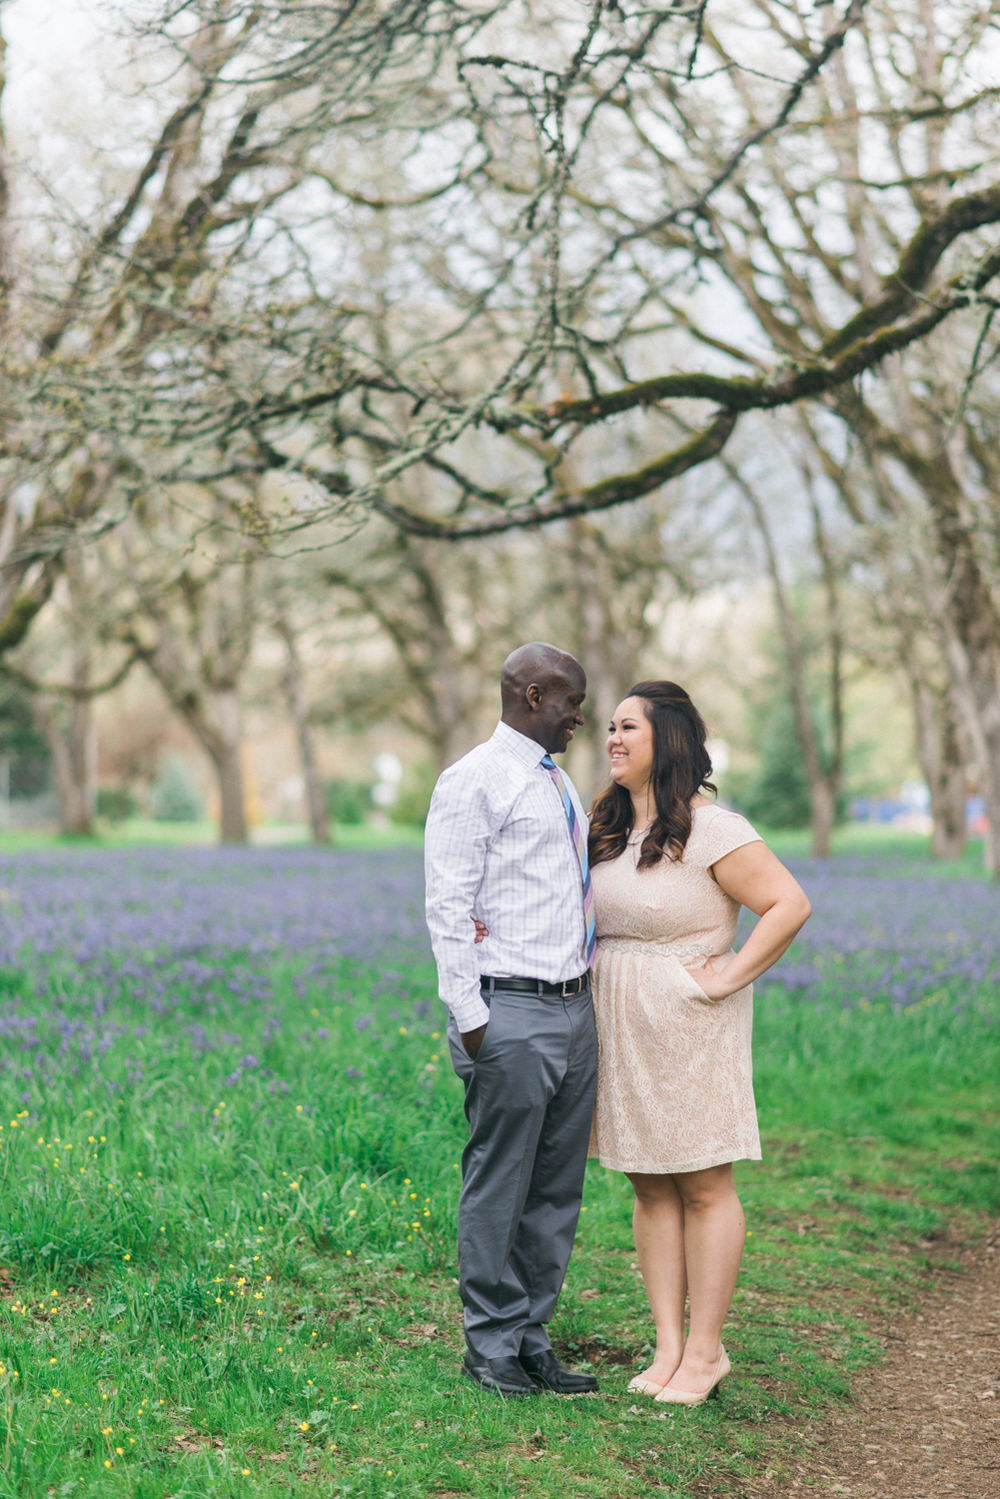 romantic-salem-engagement-photos-bush-park-shelley-marie-photo-23